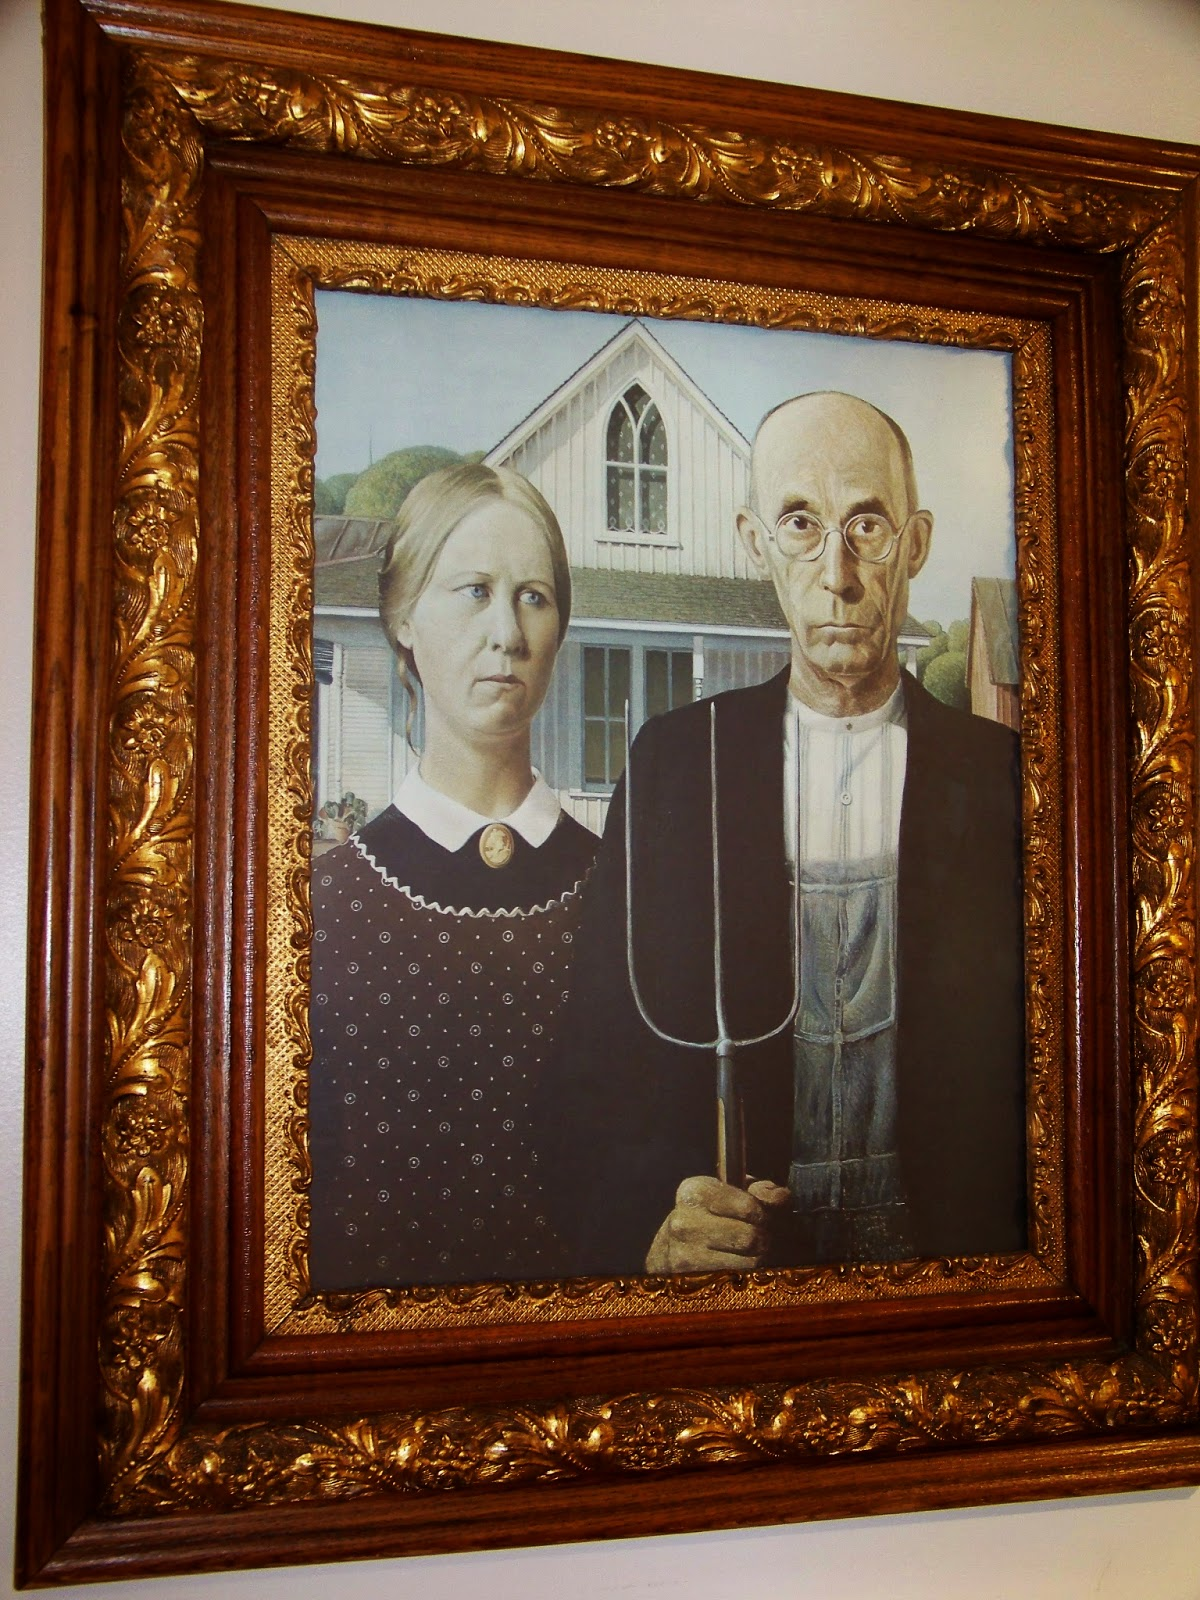 The American Gothic Center Offers Costumes Glasses And Hay Forks For You To Make Your Own Parody Of Painting Their Friendly Staff Will Even Help Take